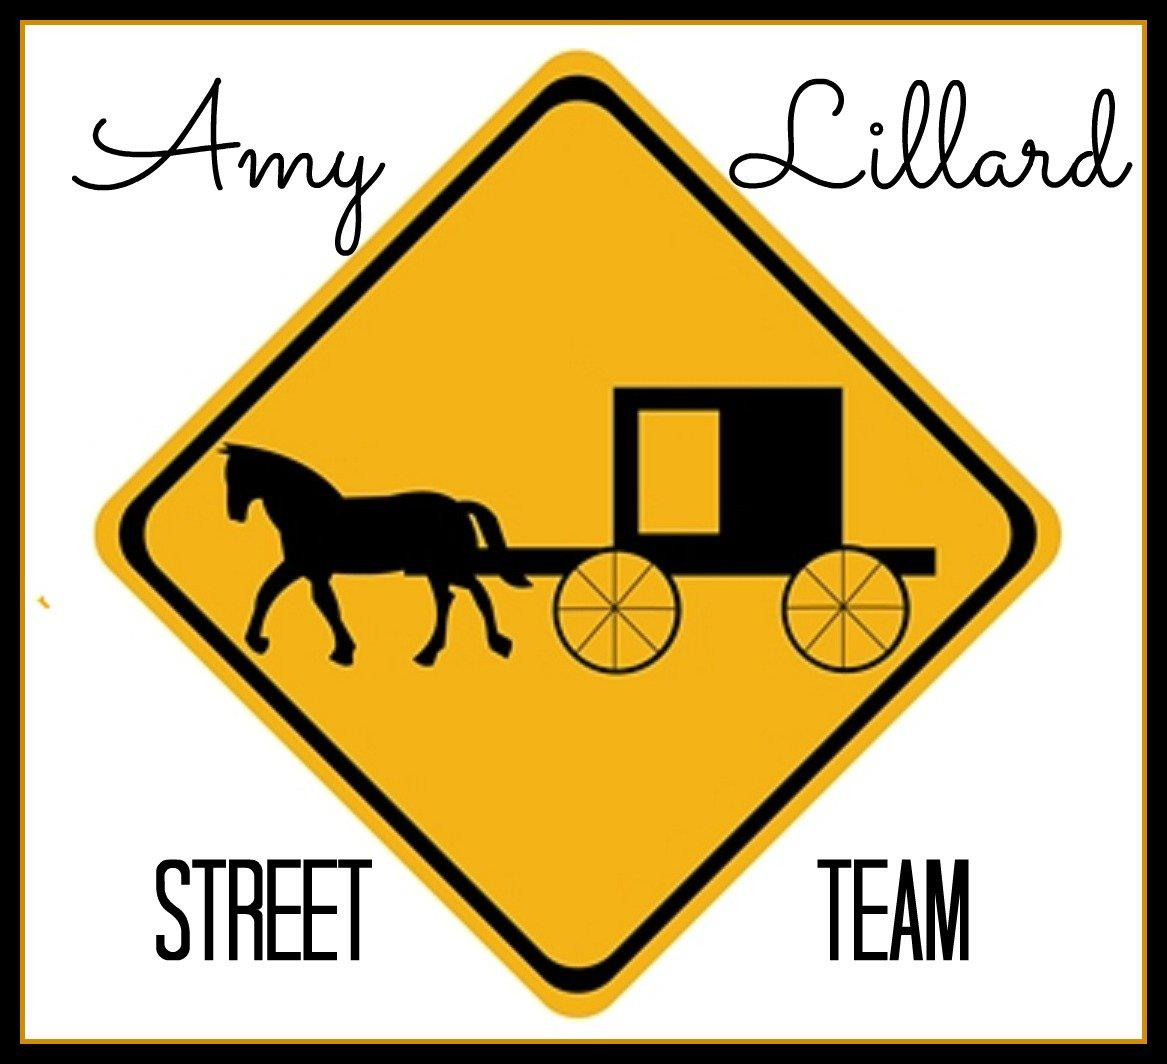 Amy Lillard Street Team